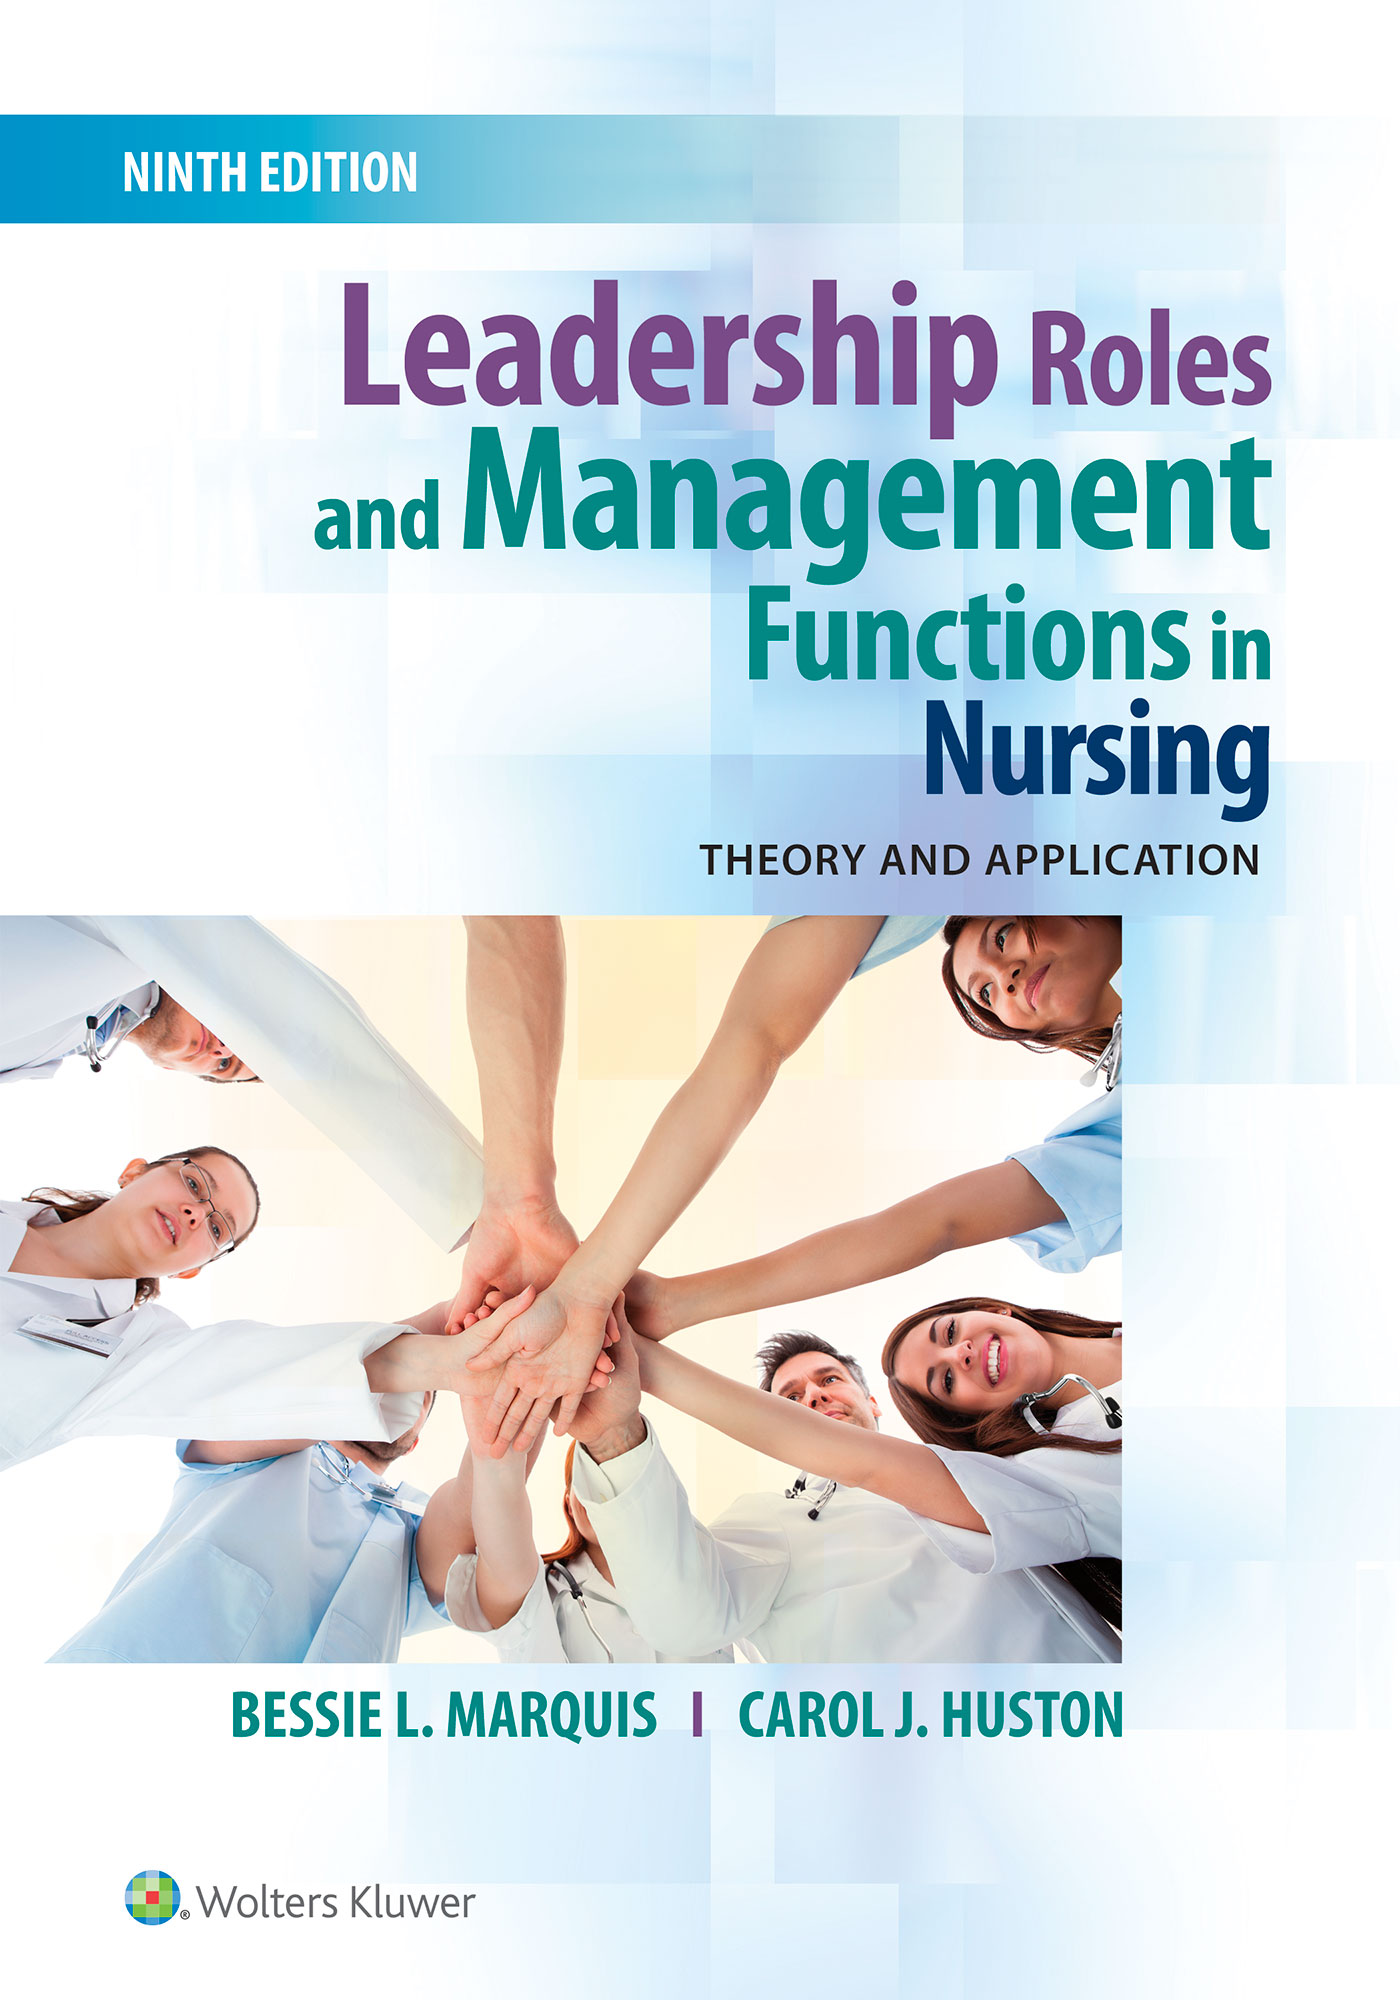 leadership roles in nursing Nursing is a dynamic and challenging profession in an ever-changing healthcare environment the profession needs engaging and inspiring role models and leaders.